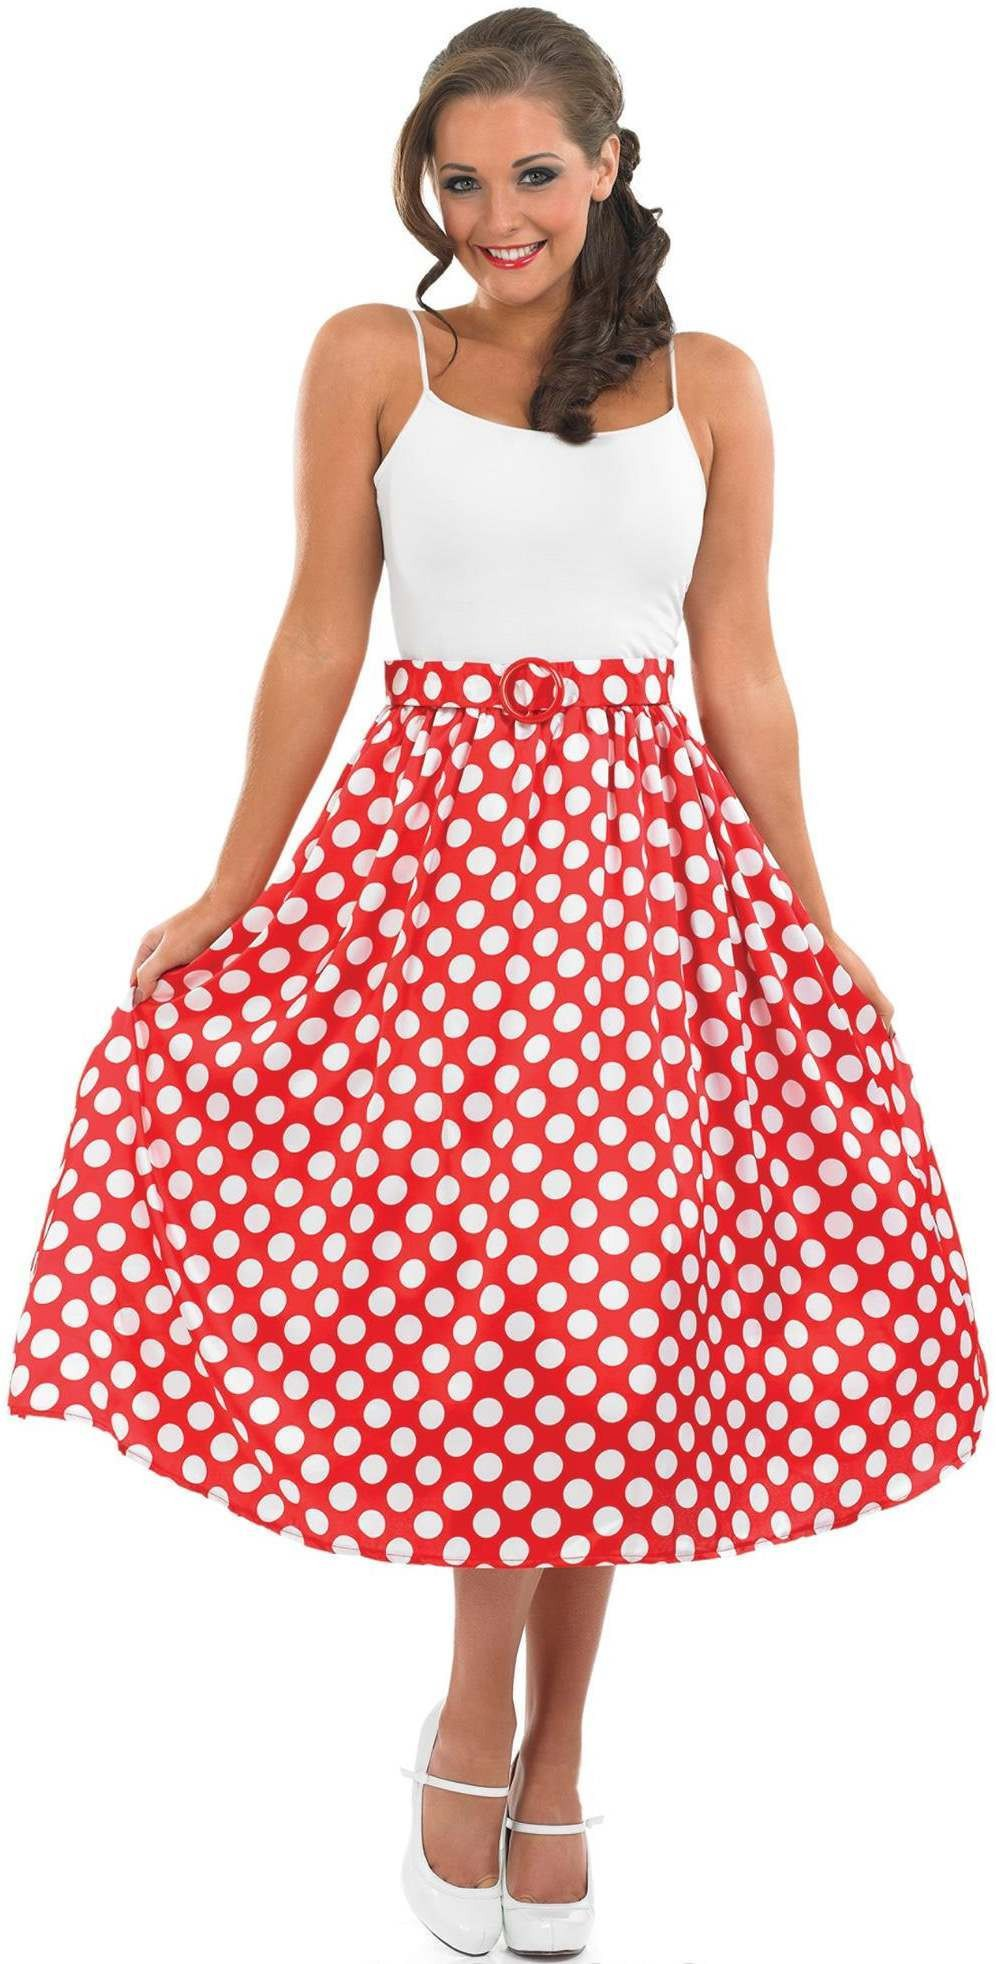 Ladies 1950S Red Rock N Roll Skirt Outfit - (Red)